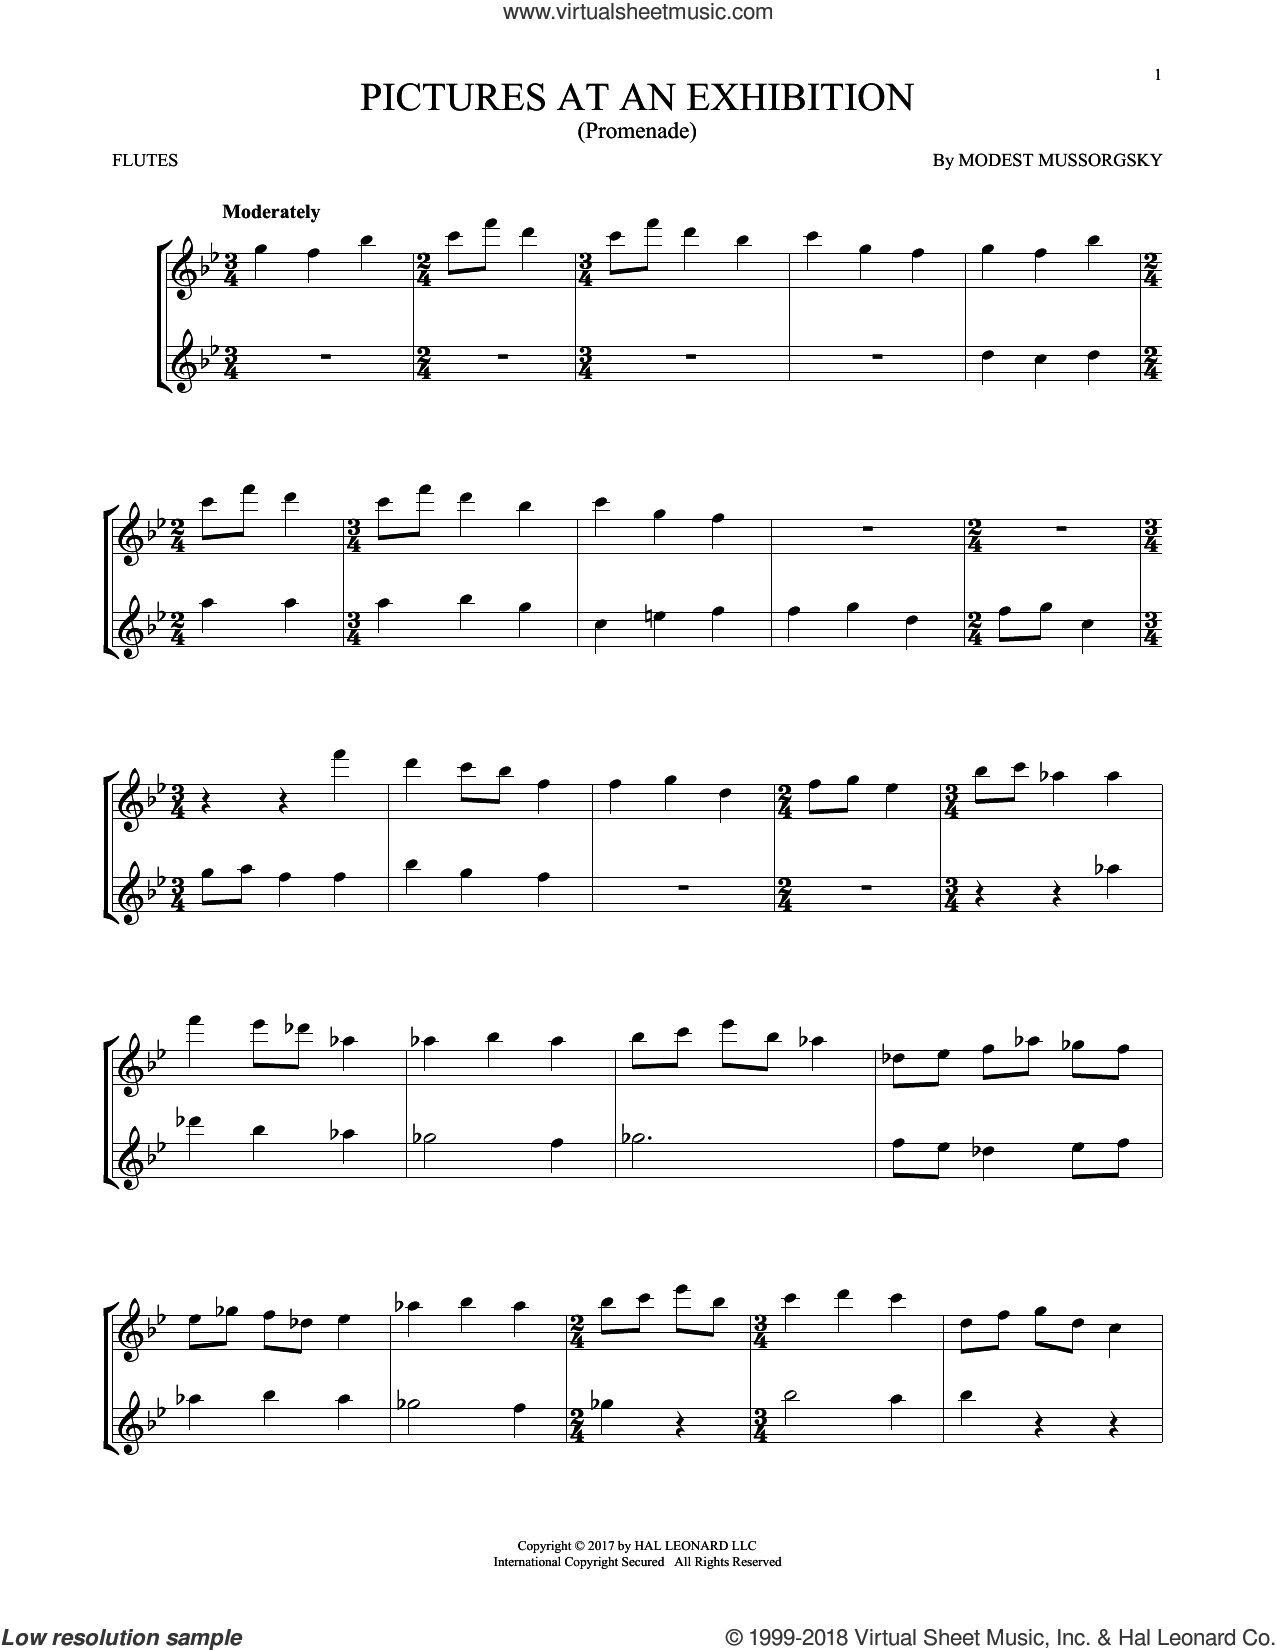 Pictures At An Exhibition sheet music for two flutes (duets) by Modest Petrovic Mussorgsky, classical score, intermediate skill level